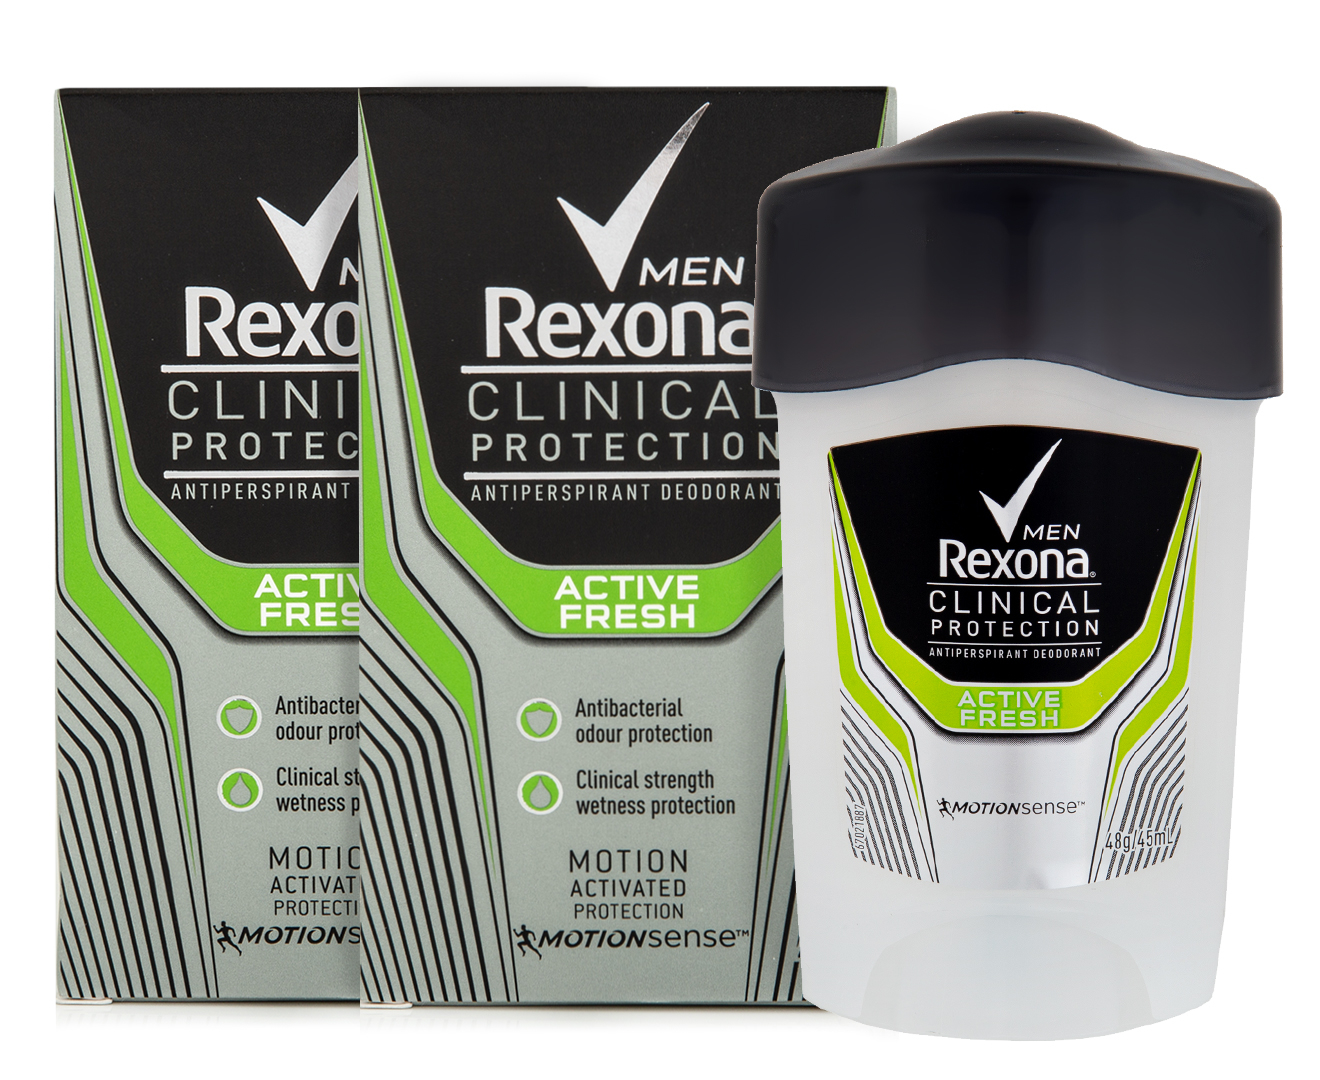 2 X Rexona Men Clinical Protection Roll On Deodorant Active Fresh Natural 50ml 45ml